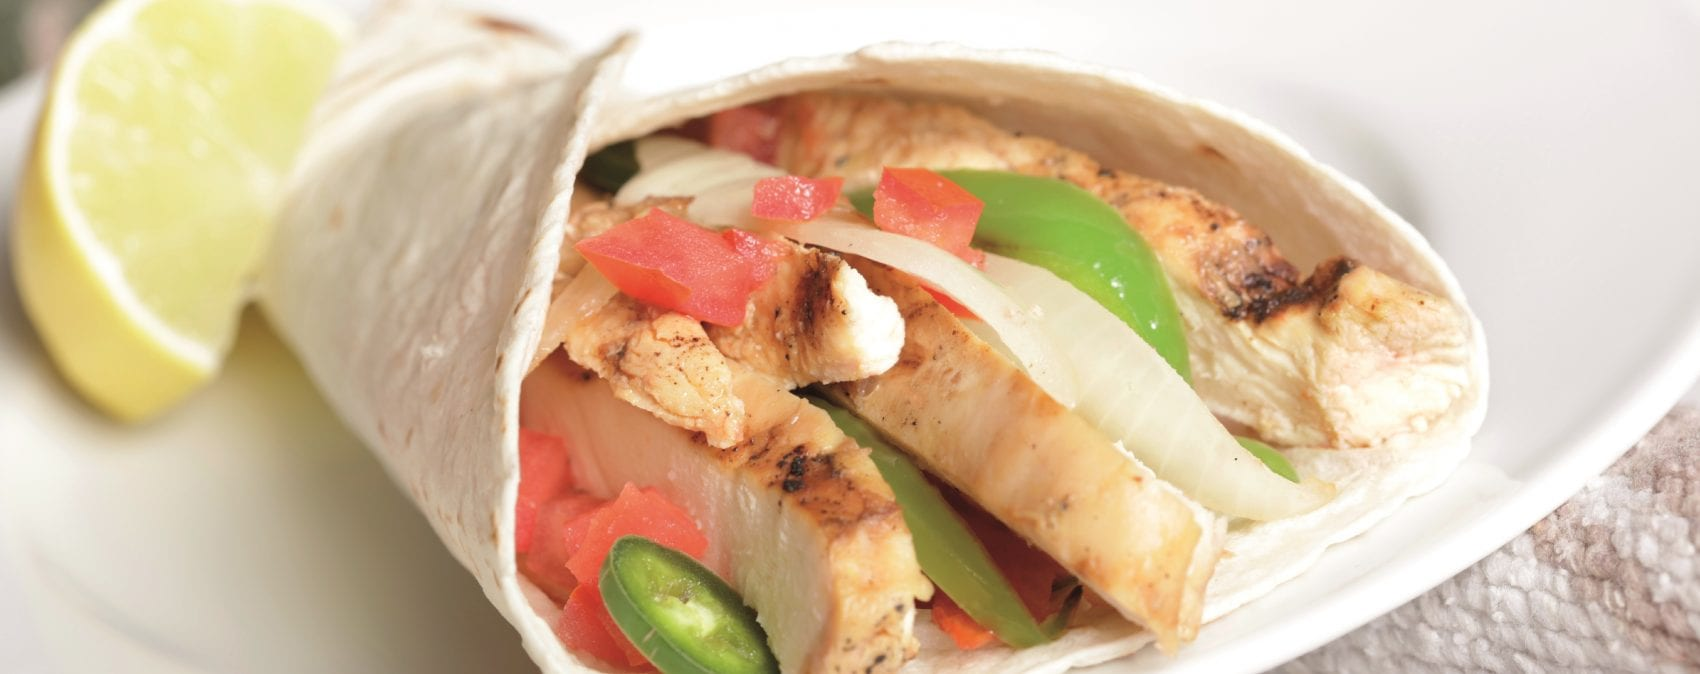 Burritos met gegrilde citruskip